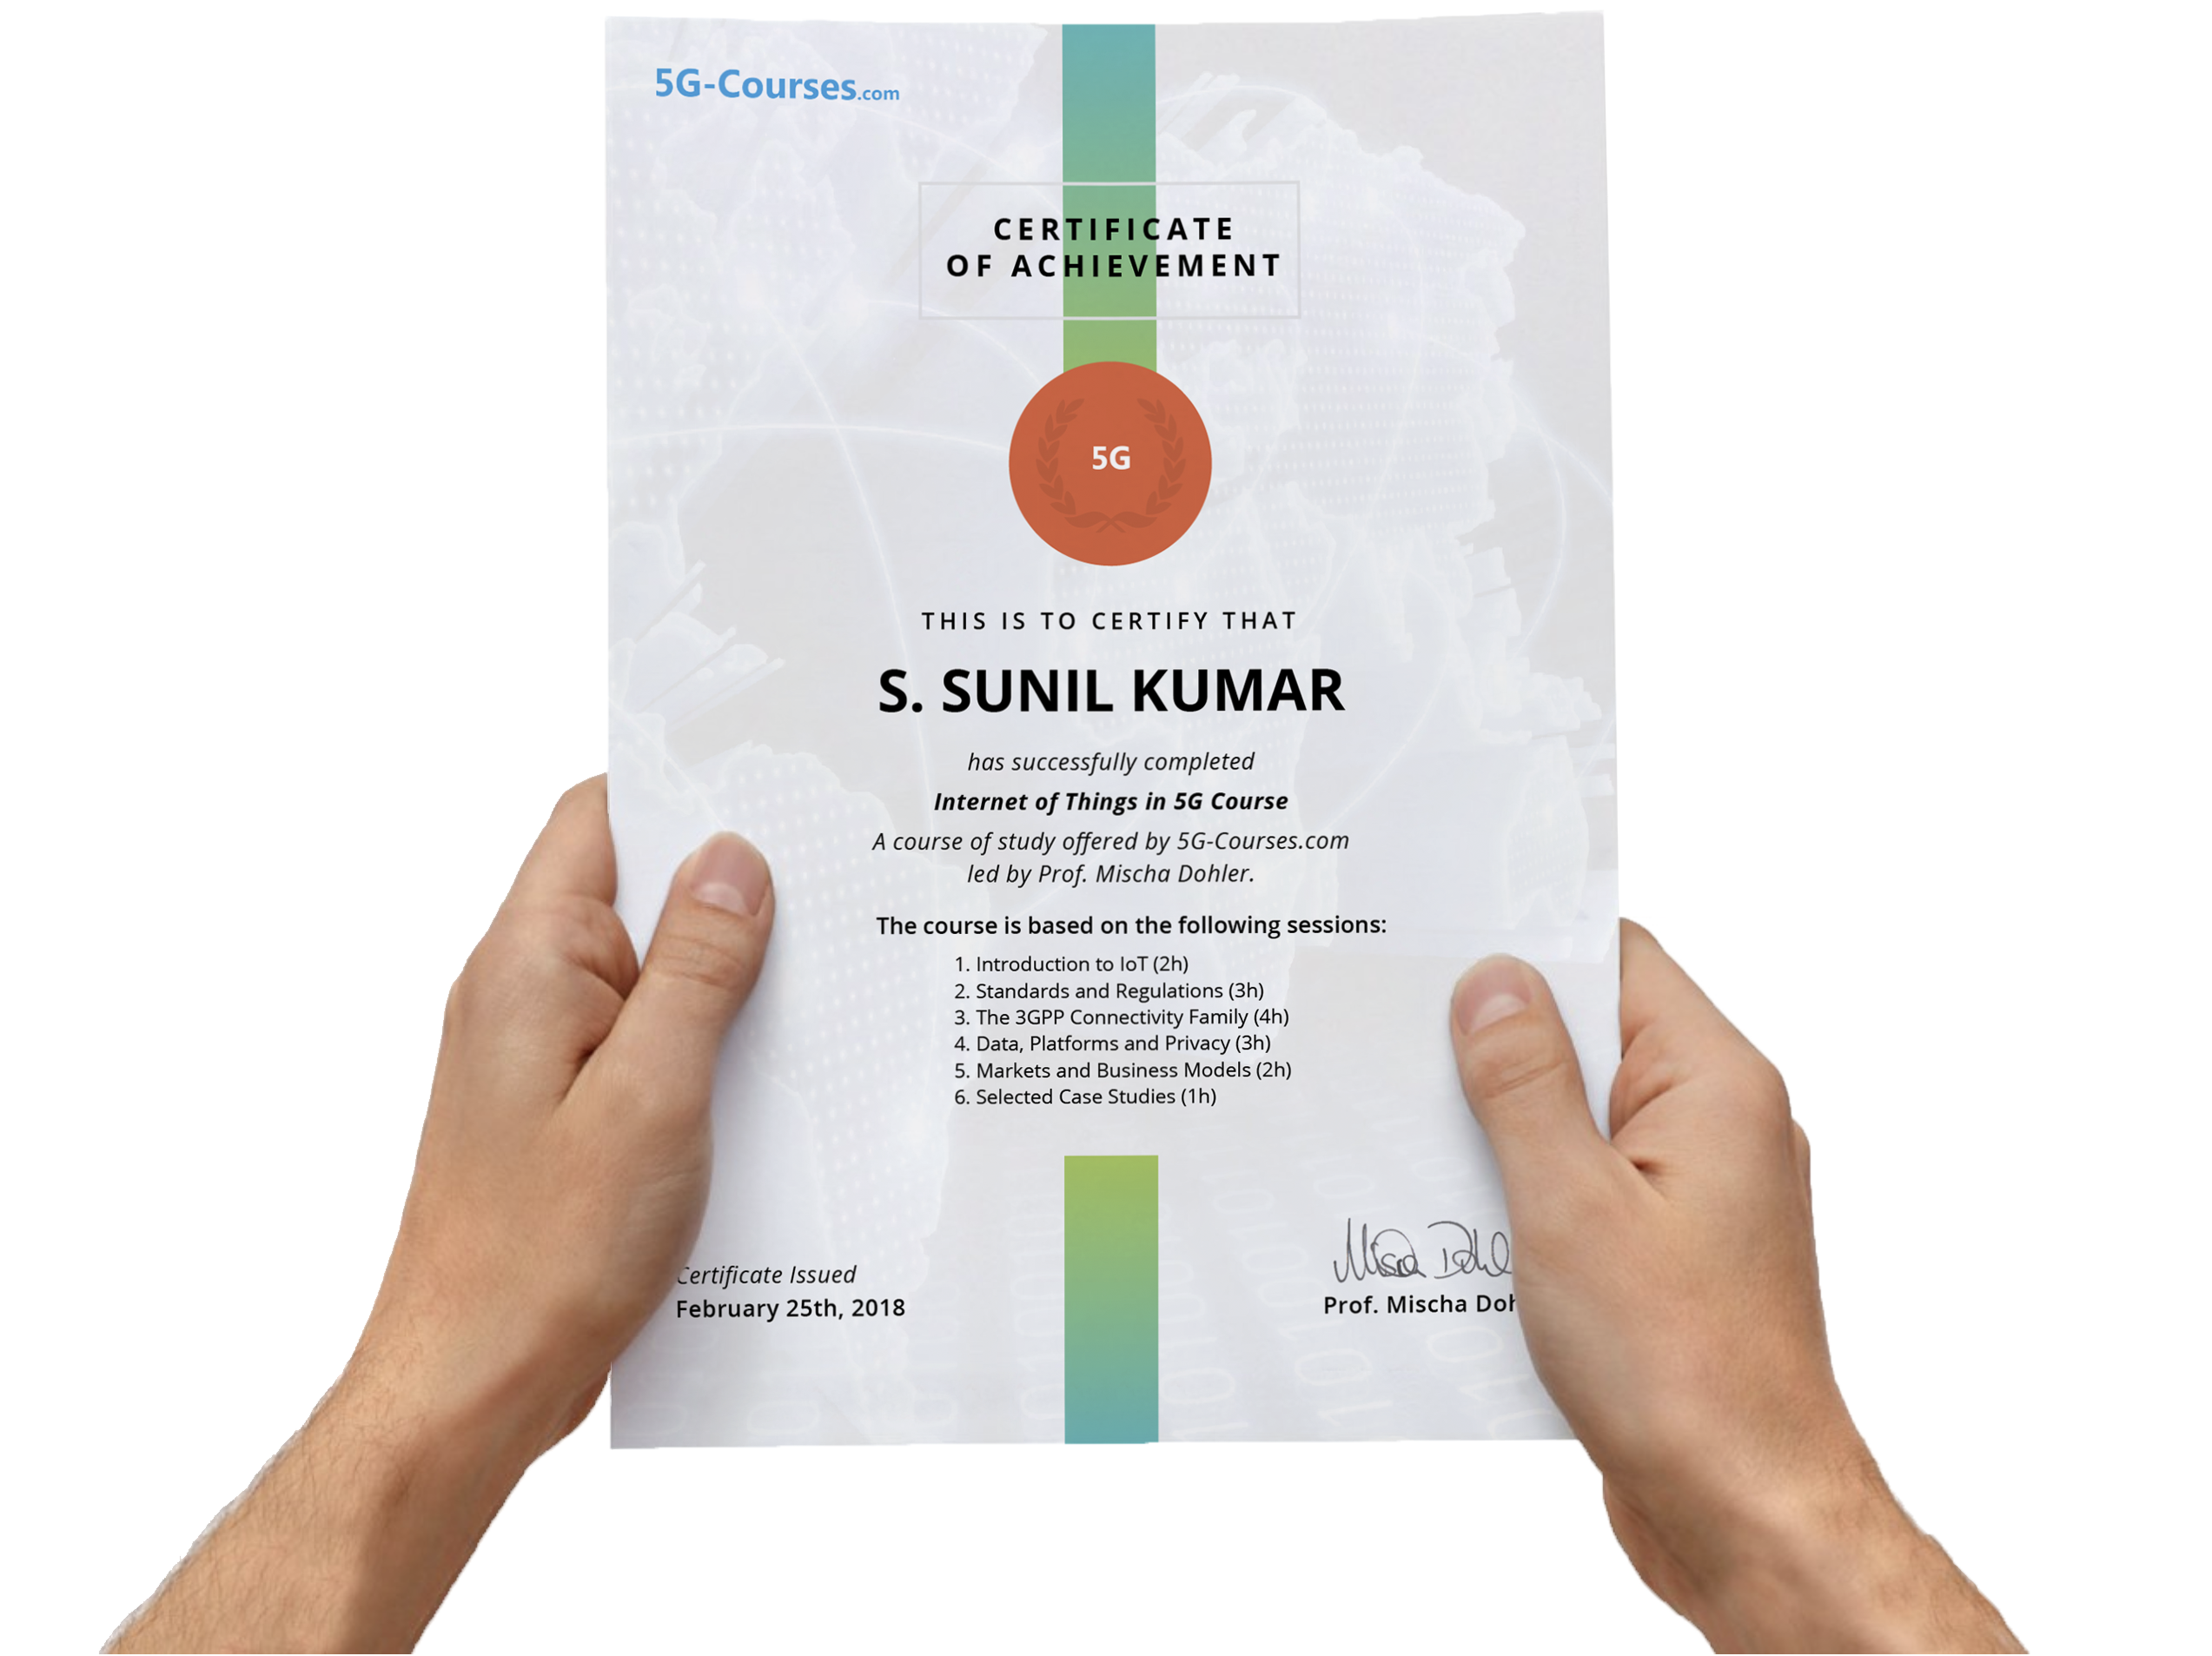 Earn a certificate from 5G-Courses.com